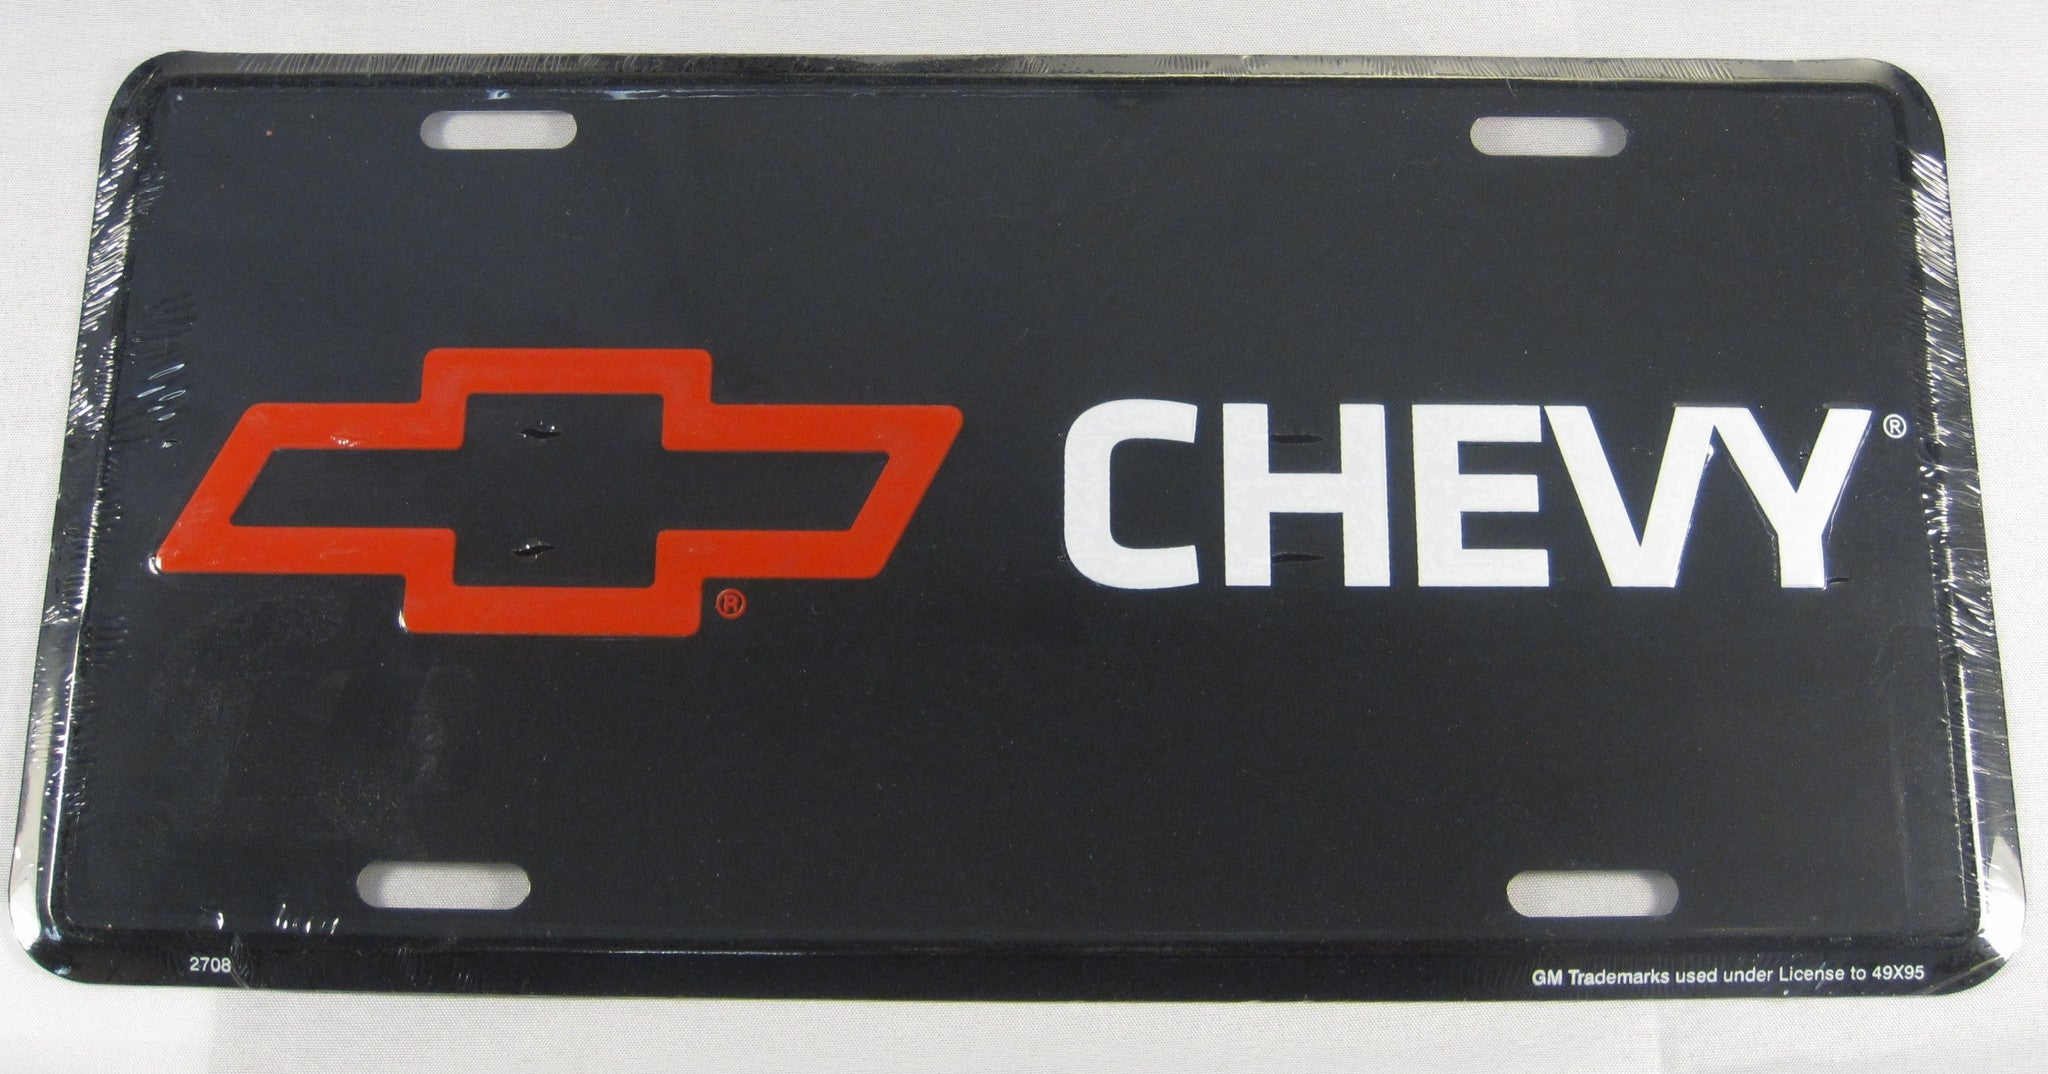 62d30b38d Wholesale chevy now available at Wholesale Central - Items 1 - 40